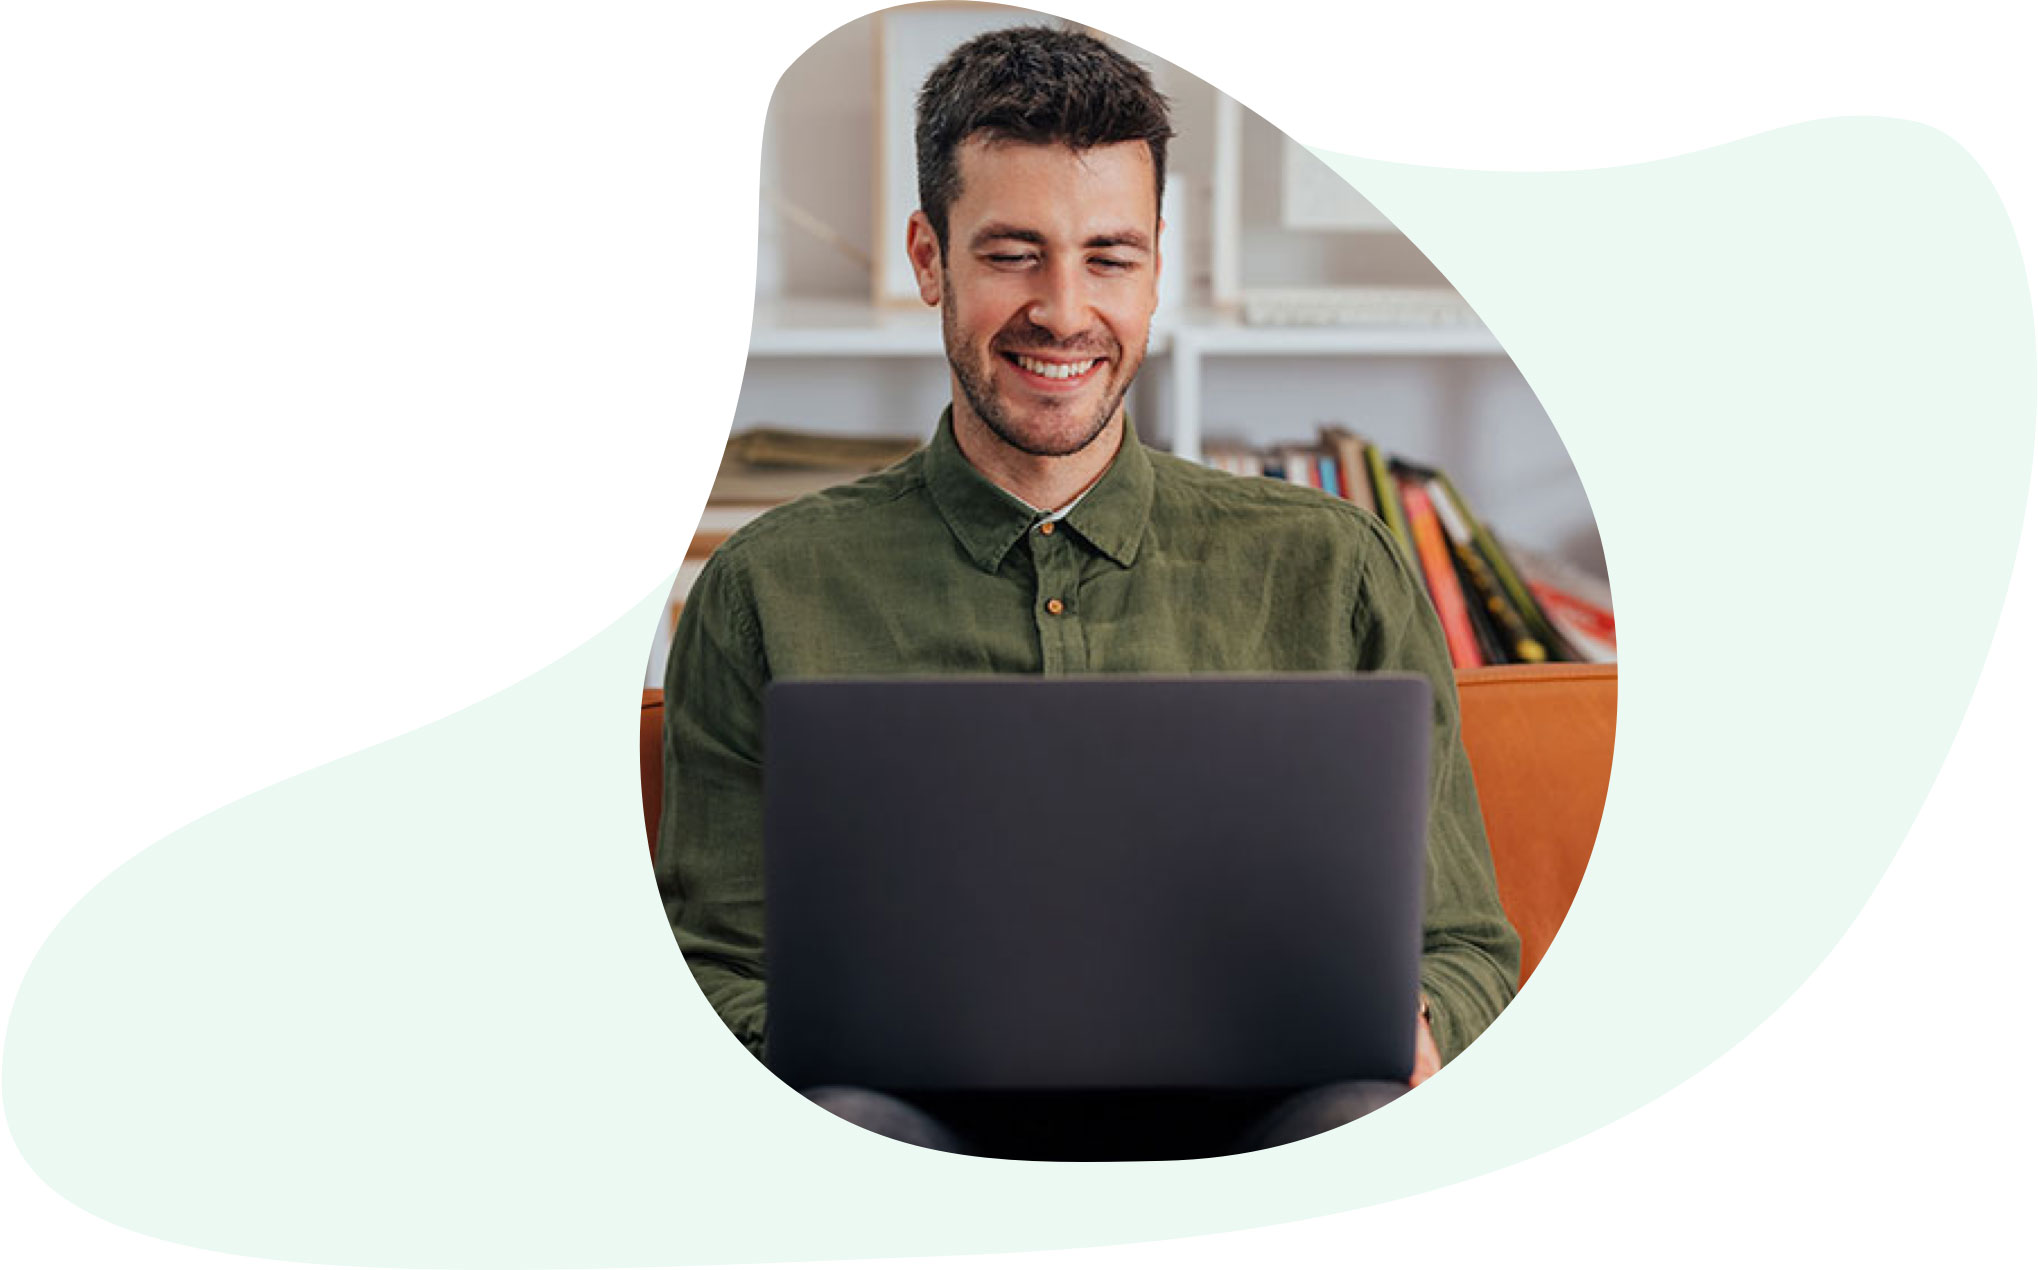 Man wearing a green shirt and working on his laptop